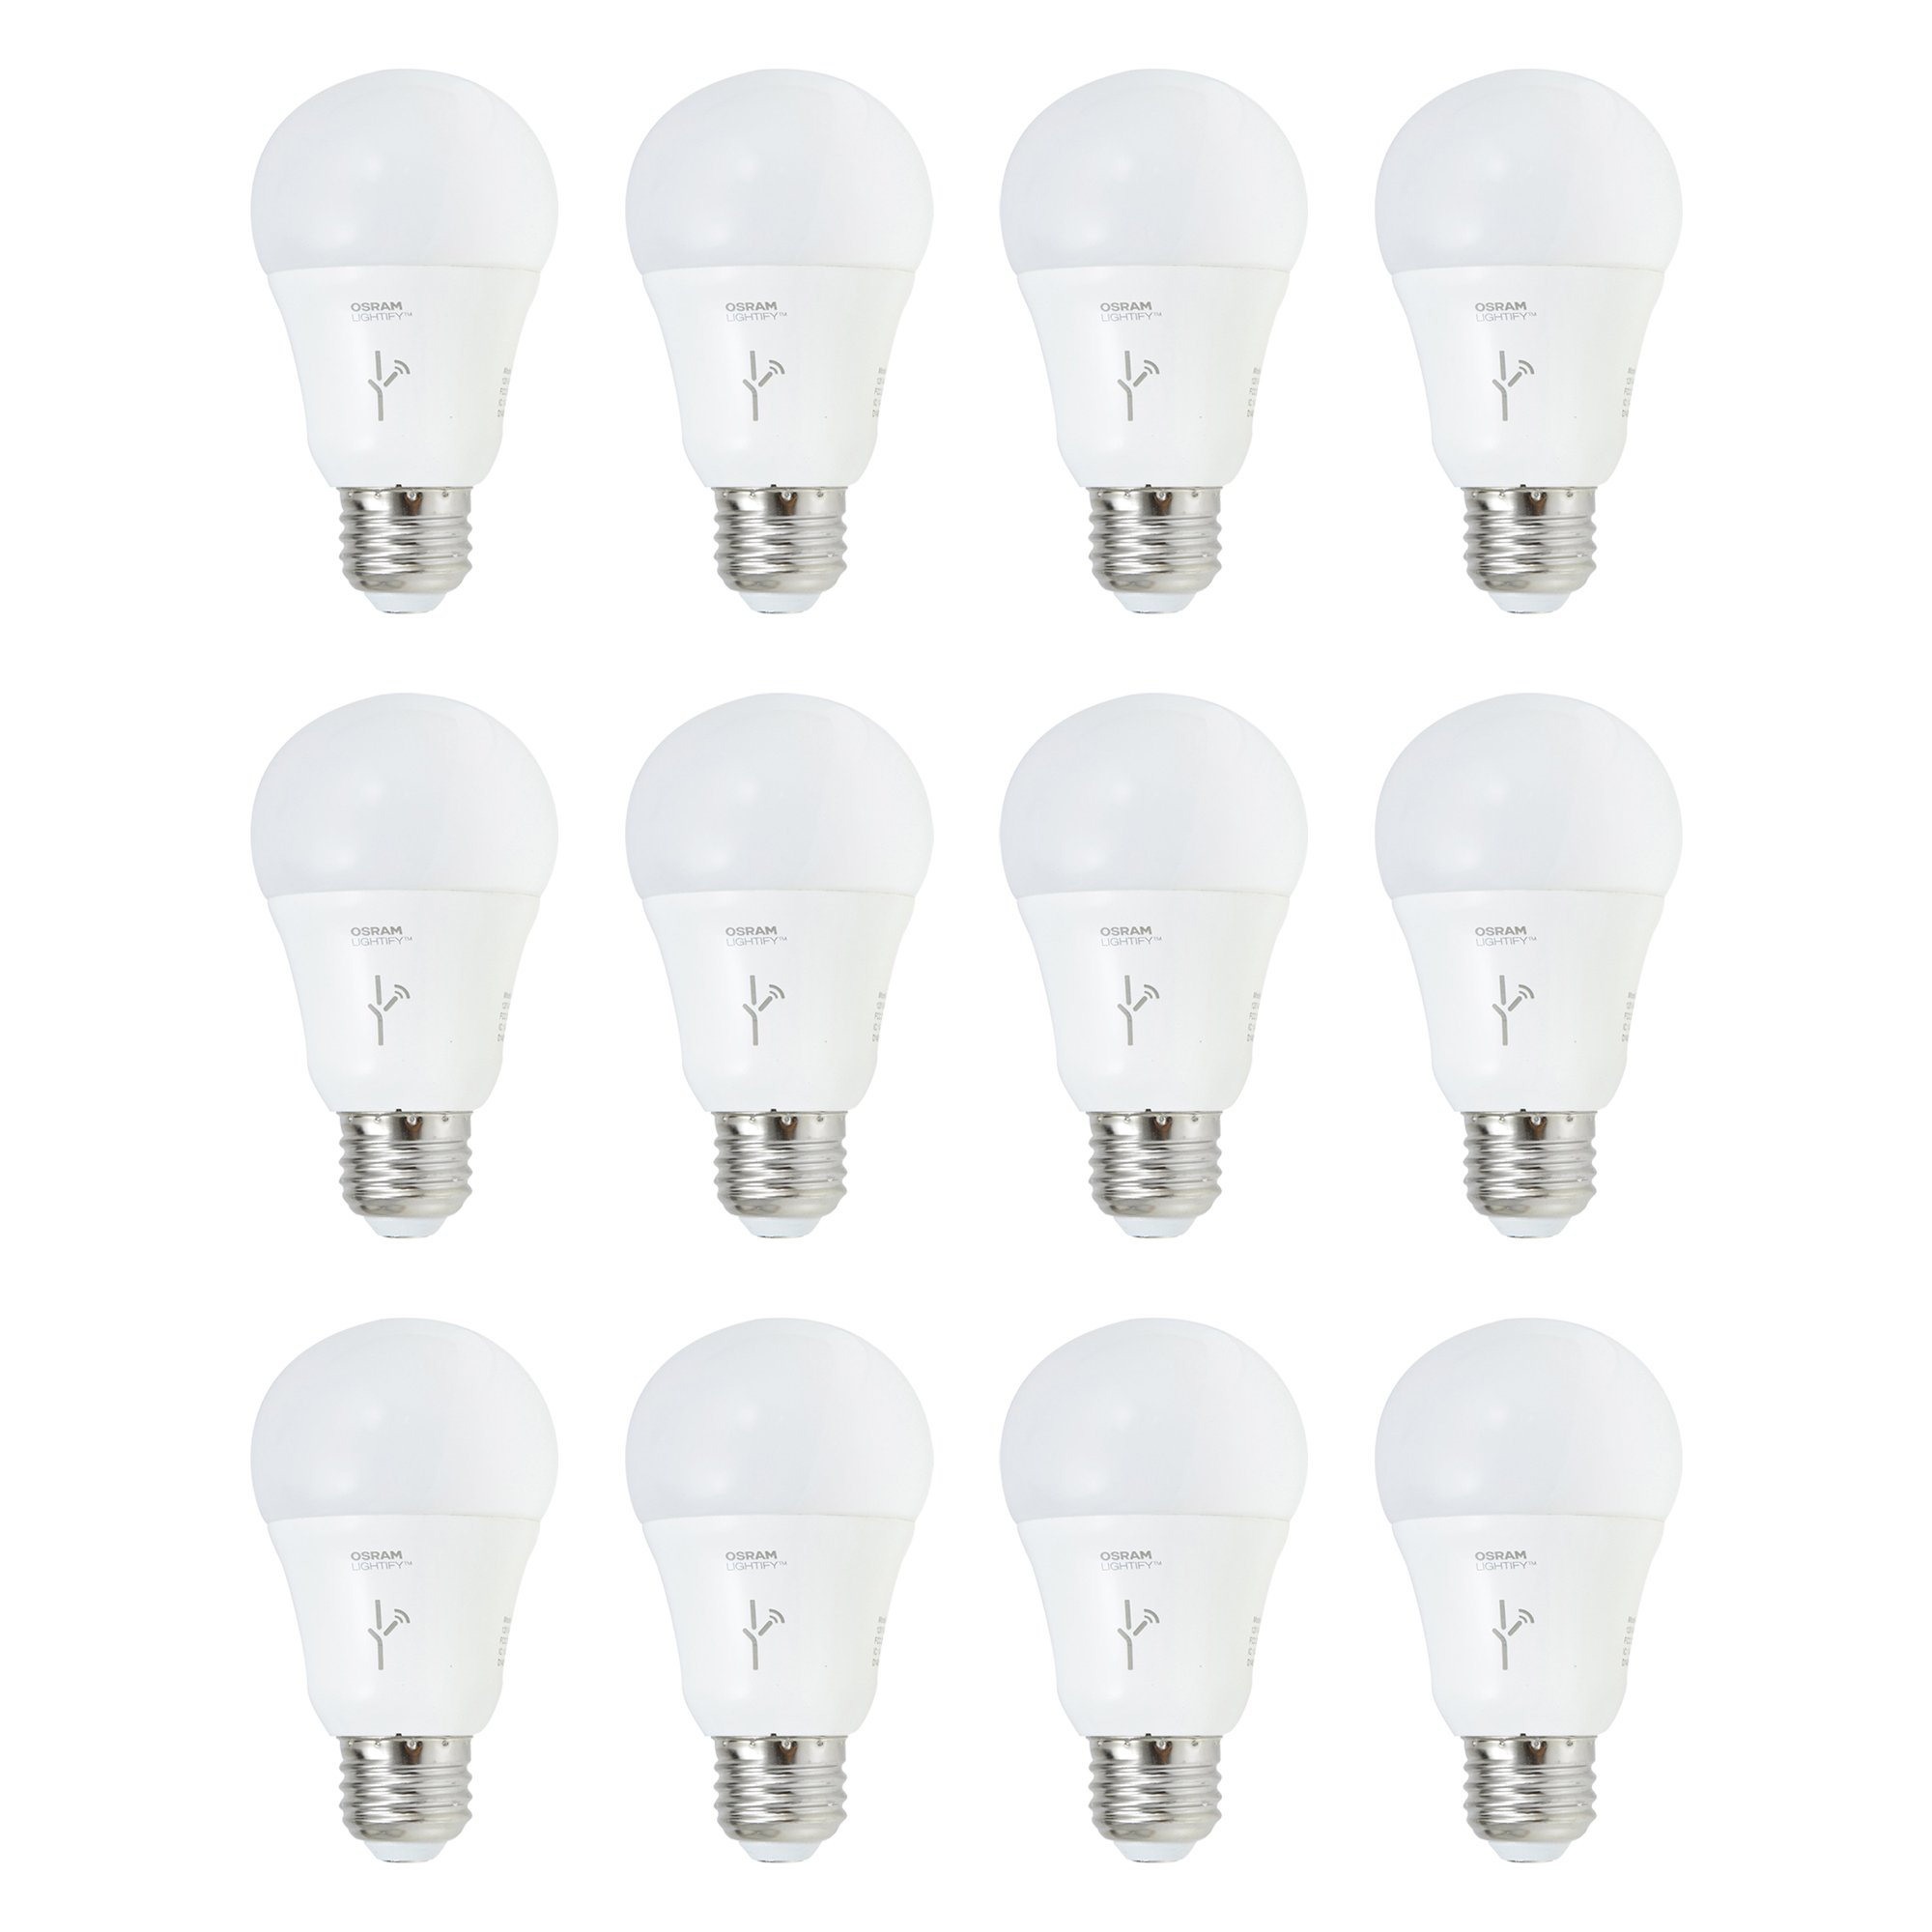 Sylvania Lightify 60-Watt A19 Tunable White Smart Home LED Light Bulb (12 Pack) by Sylvania